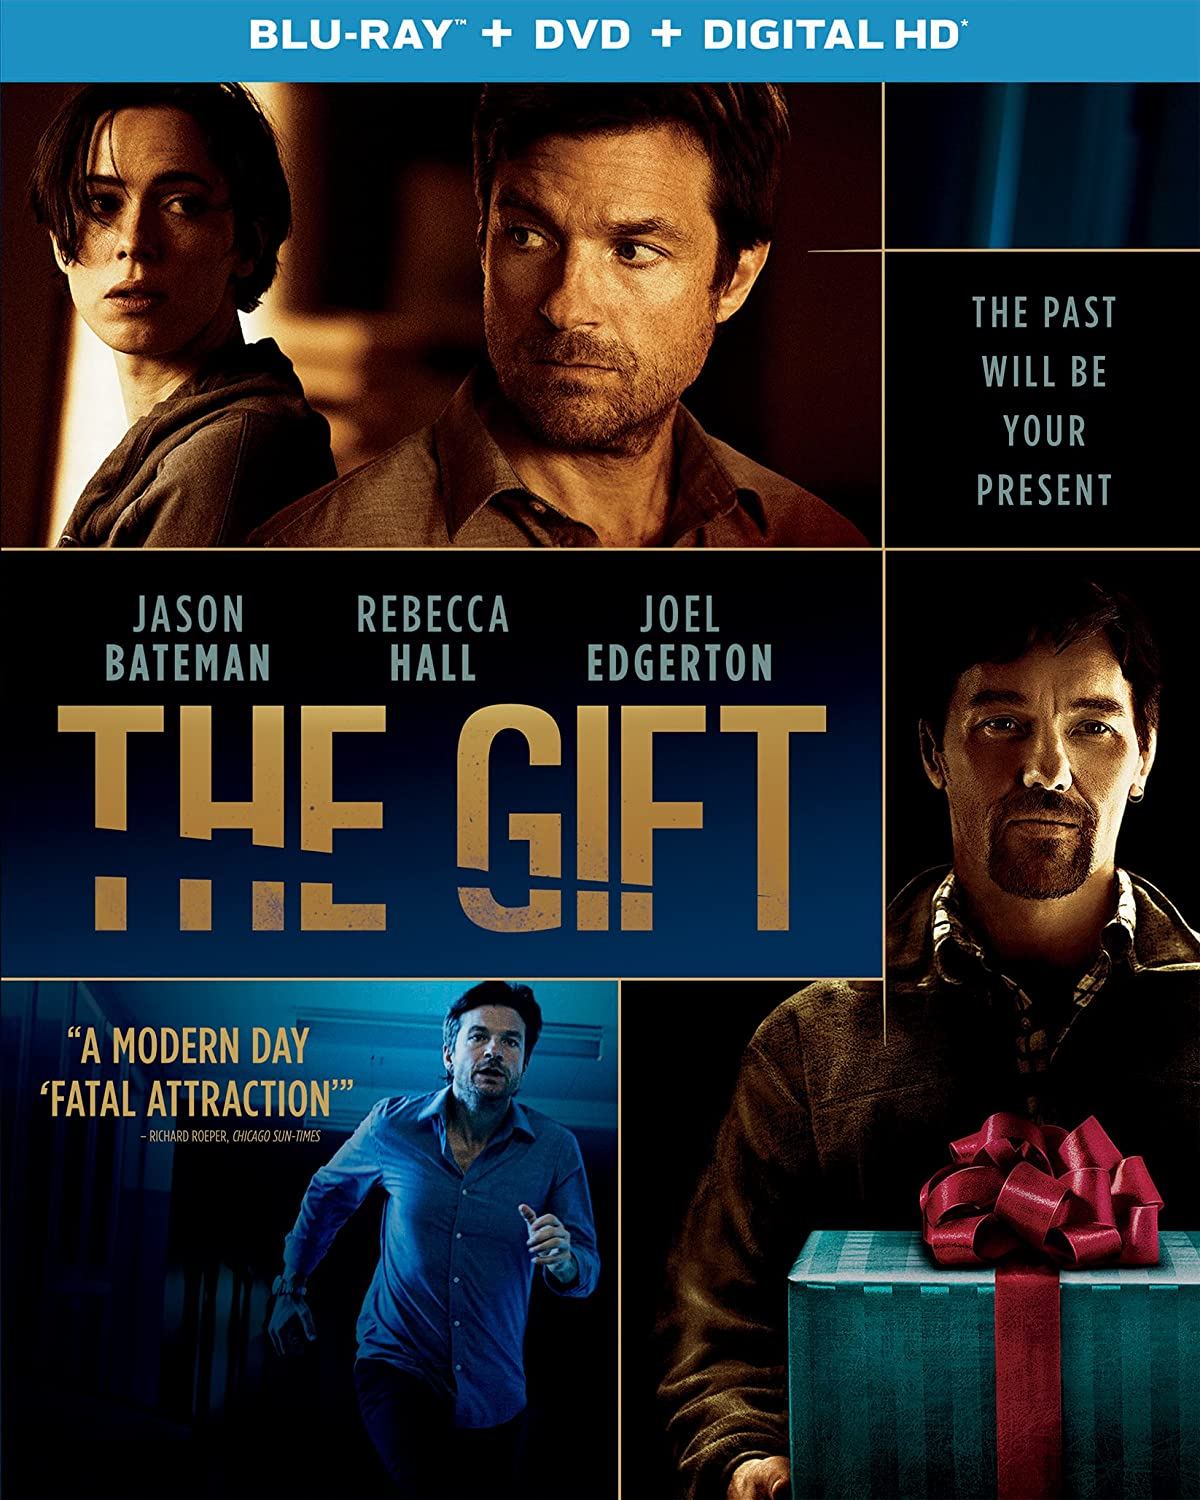 Amazon.com: The Gift (Blu-ray + DVD + DIGITAL HD with Ultraviolet ...